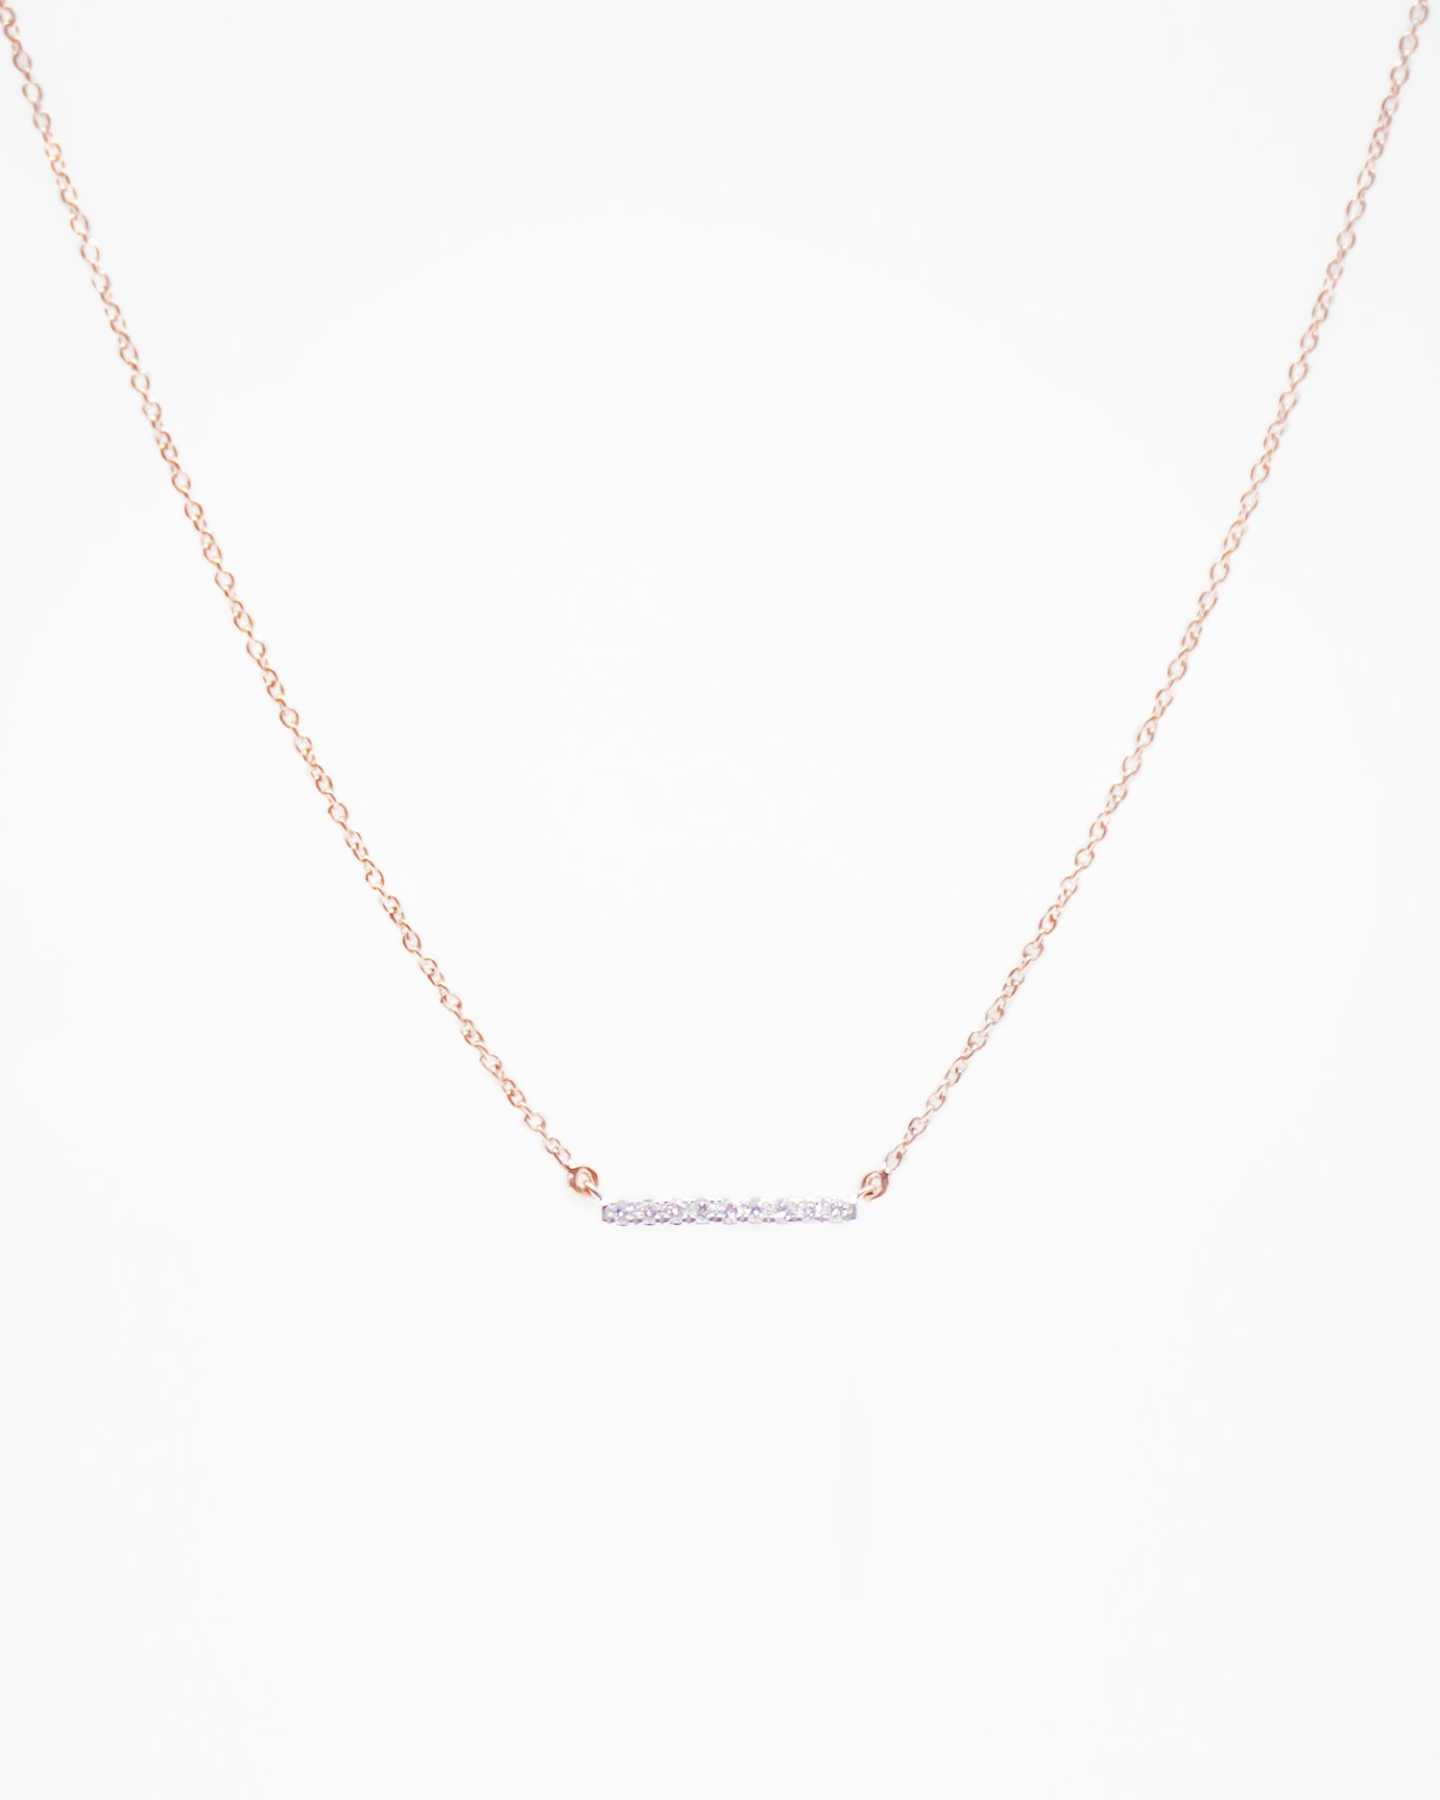 Pair With - Diamond Bar Necklace - Yellow Gold